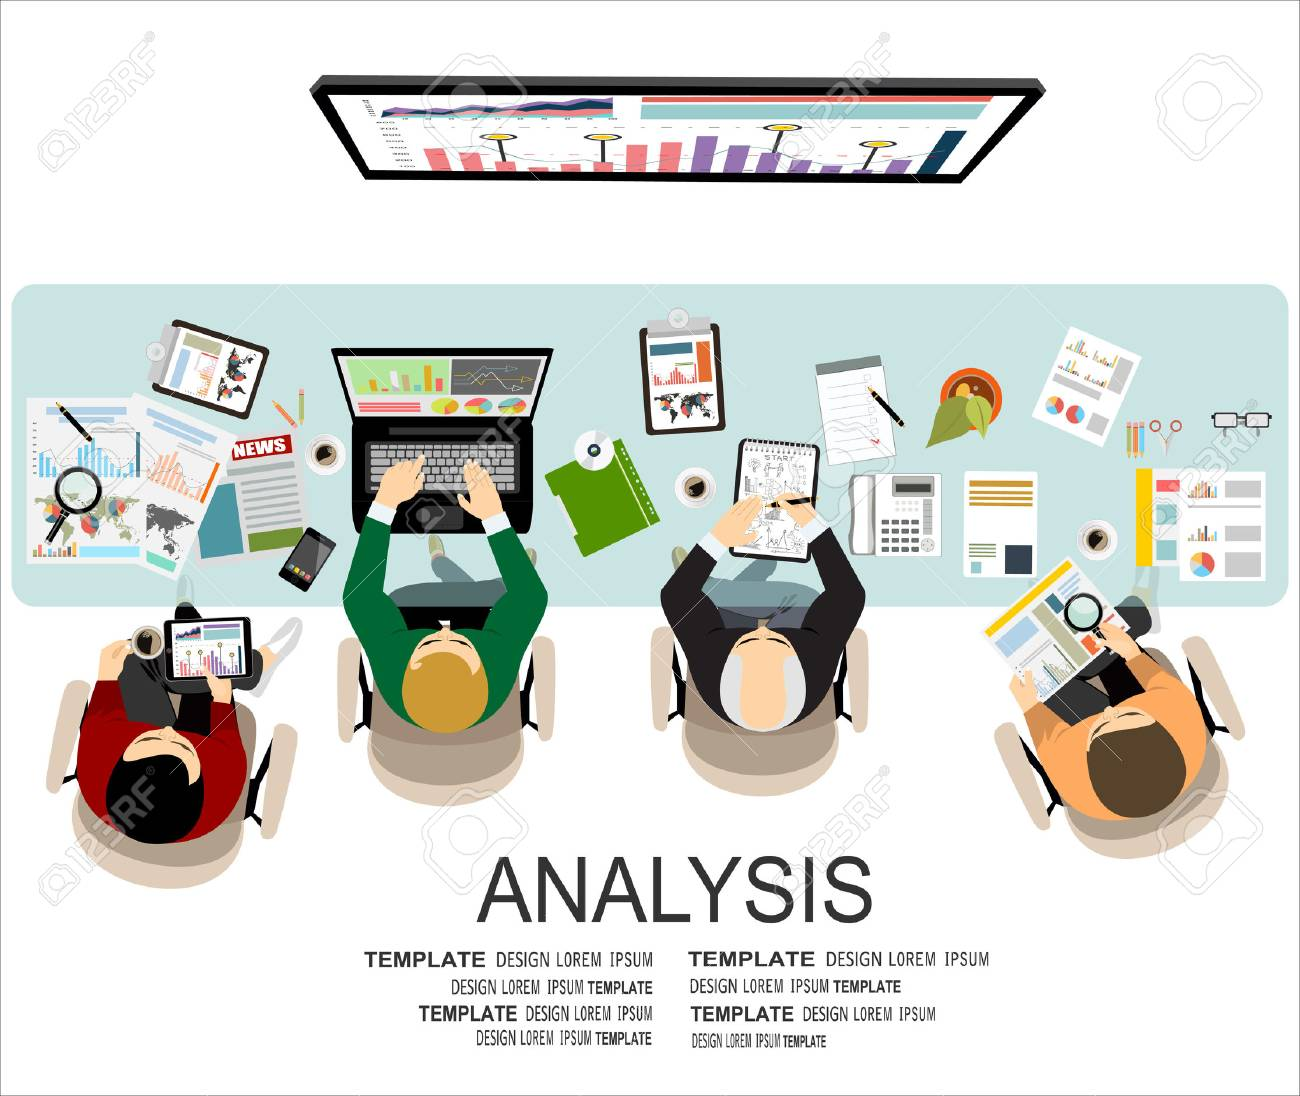 Flat design illustration concepts for business analysis and planning, financial strategy, consulting, project management and development. Concept to building successful business - 54628789